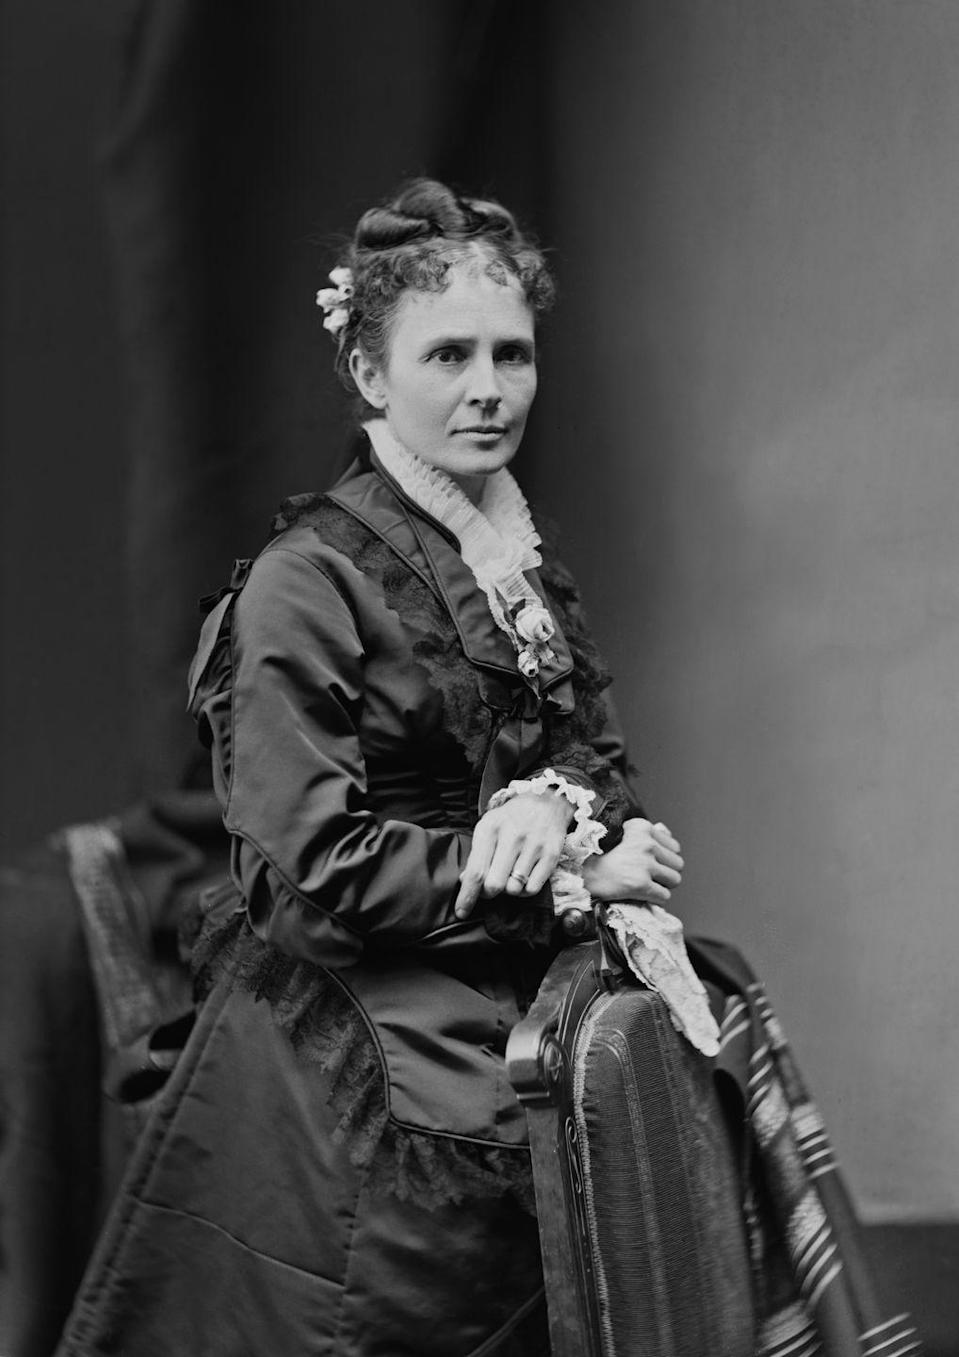 "<p>While she may have been first lady for only a short period of time, a.k.a. around six months, Lucretia Garfield kept up with the latest fashion. She <a href=""http://www.firstladies.org/biographies/firstladies.aspx?biography=21"" rel=""nofollow noopener"" target=""_blank"" data-ylk=""slk:wore a lavender gown"" class=""link rapid-noclick-resp"">wore a lavender gown</a> with a high collar to her husband's inaugural ball in 1881, as seen here. </p>"